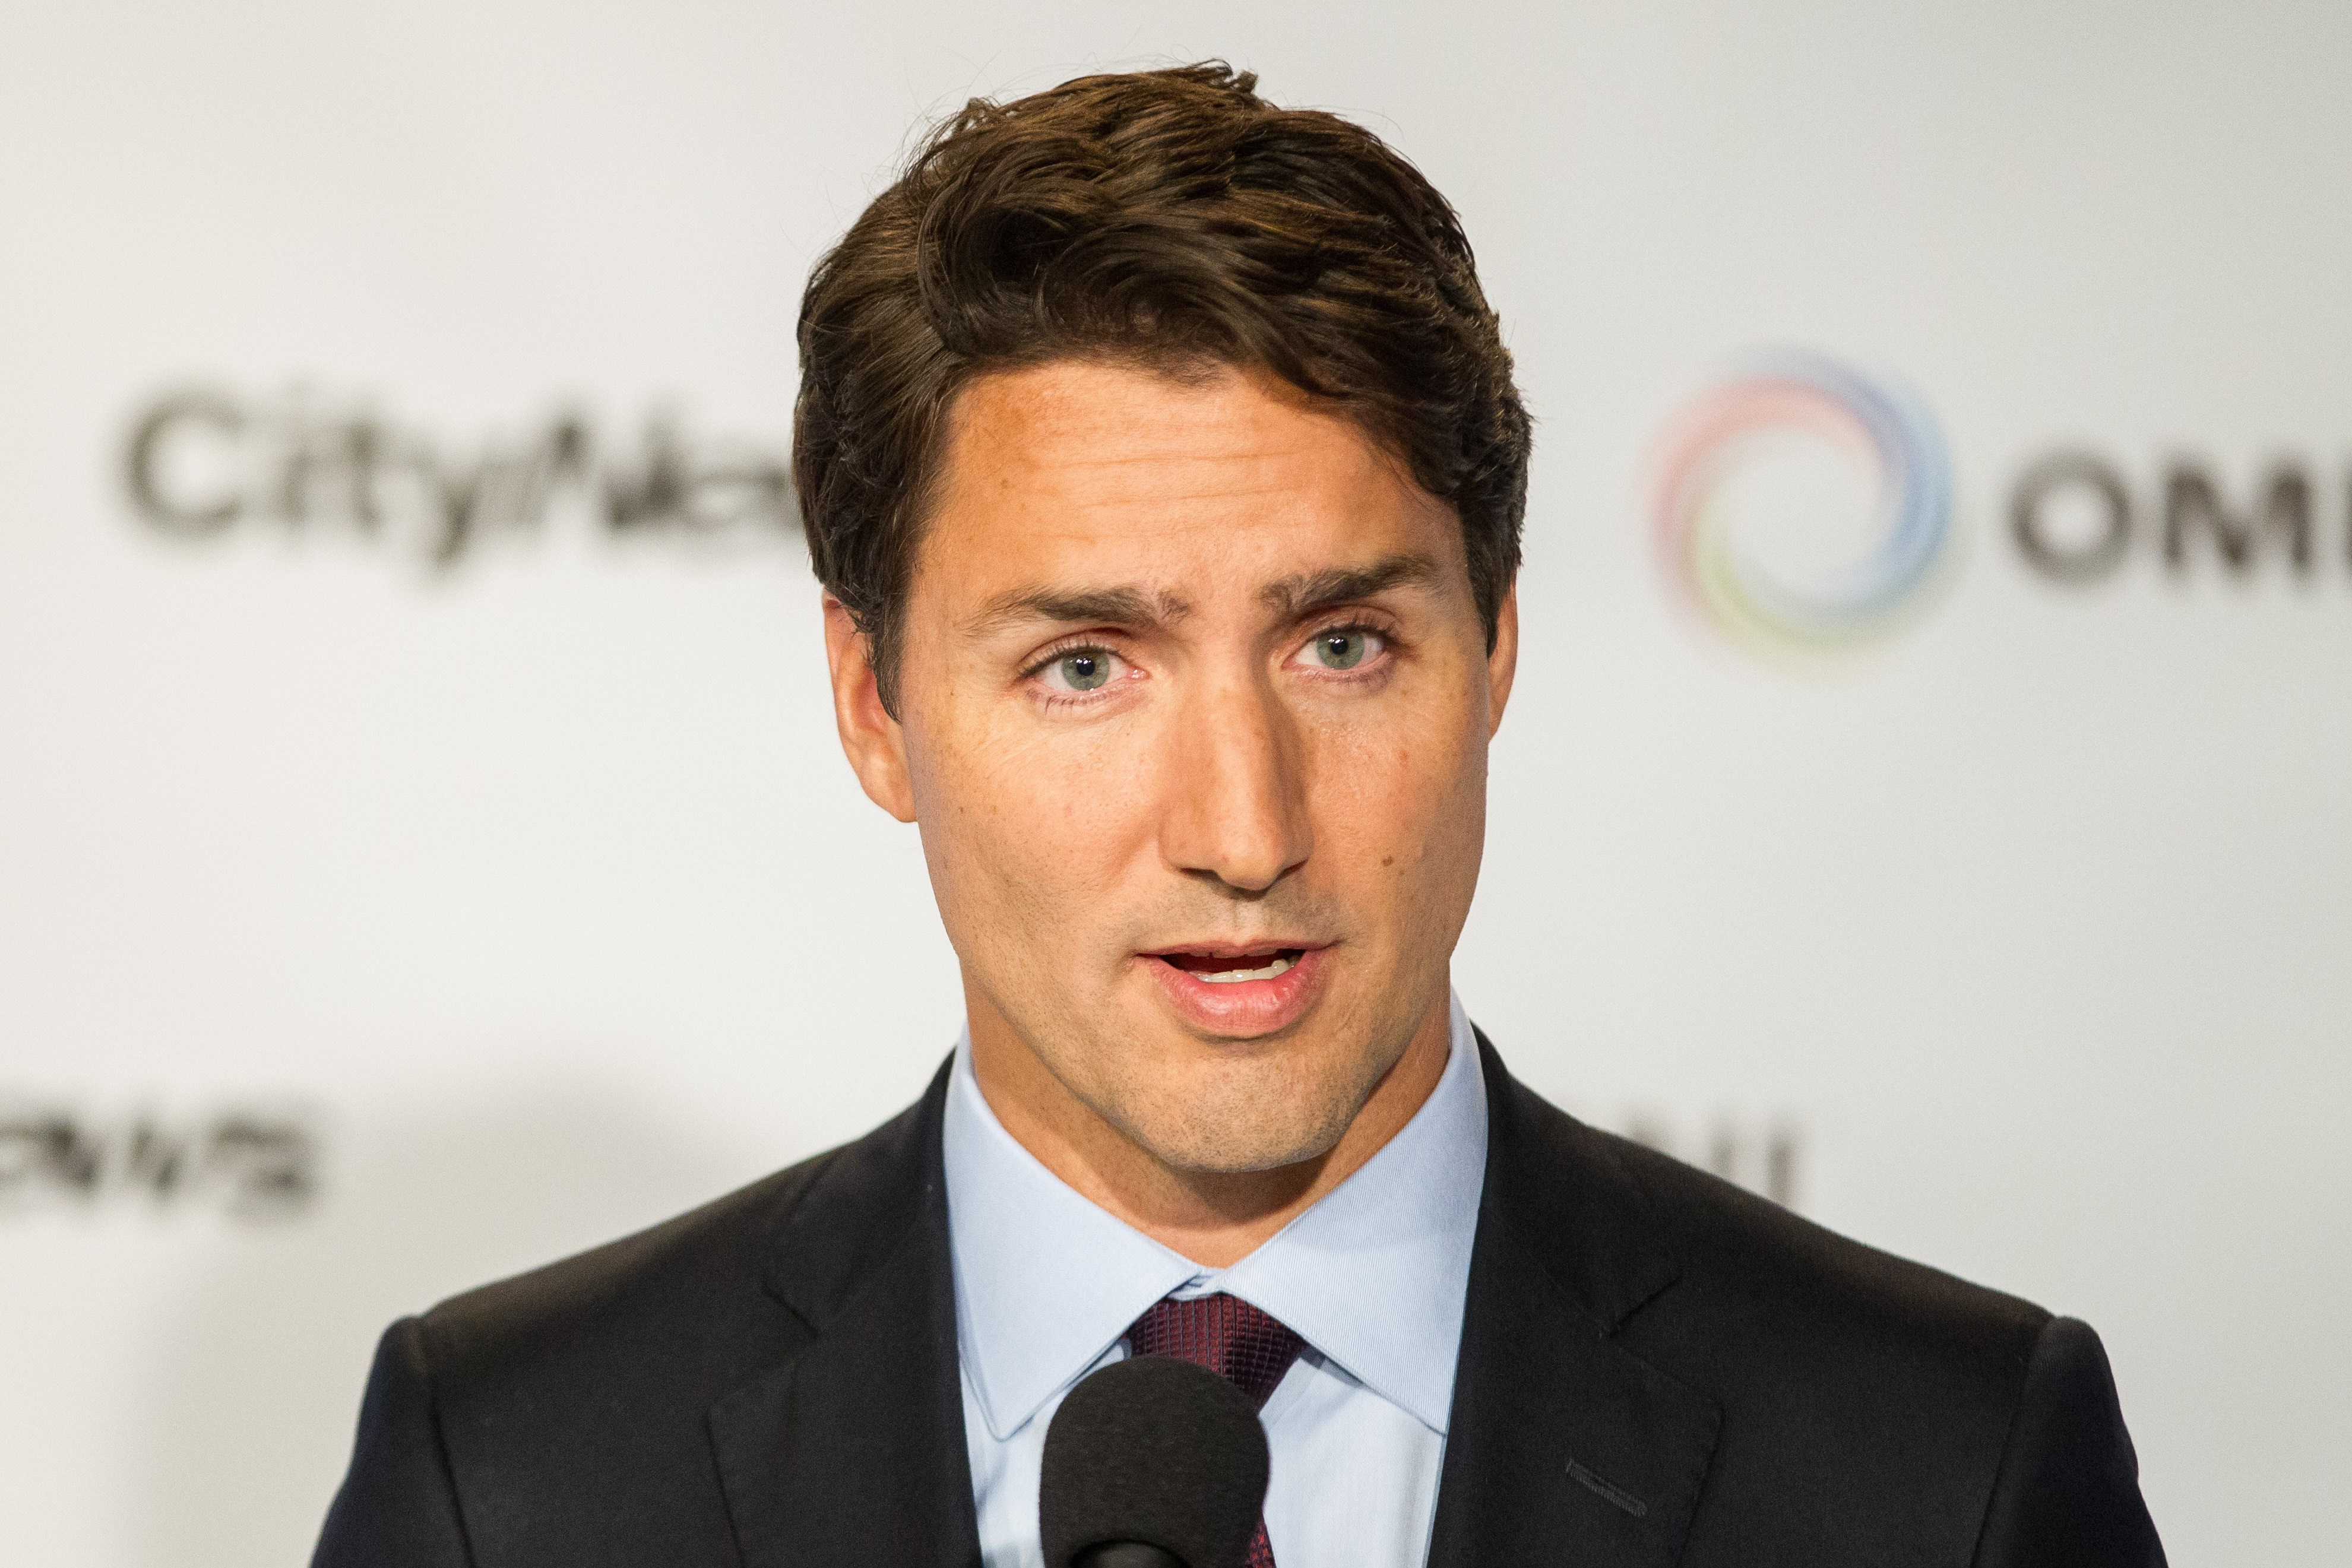 justin trudeau   canada   sexiest world leaders and royals